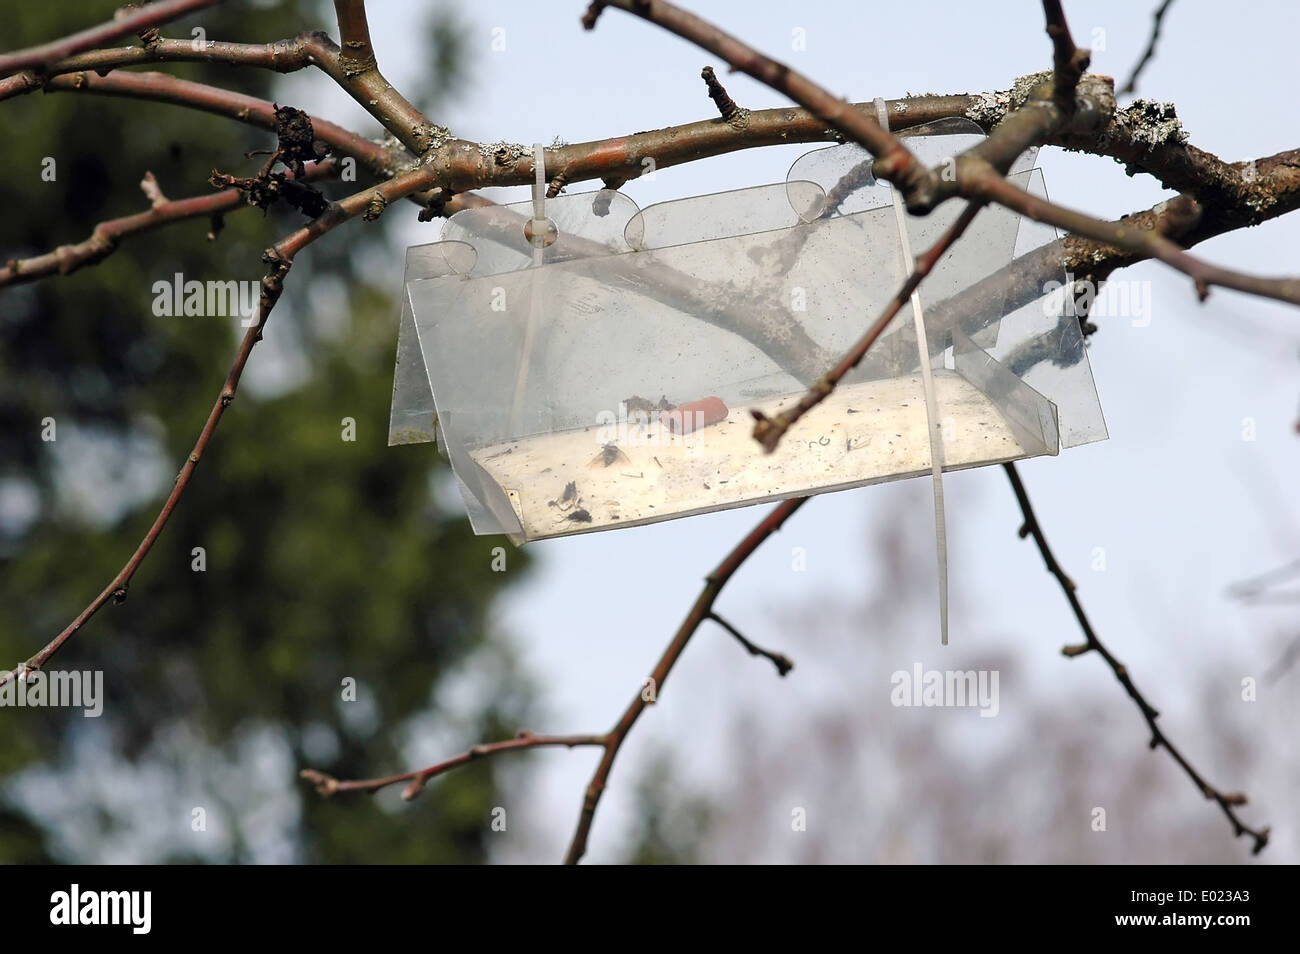 trap for catching insects and protect apple trees - Stock Image